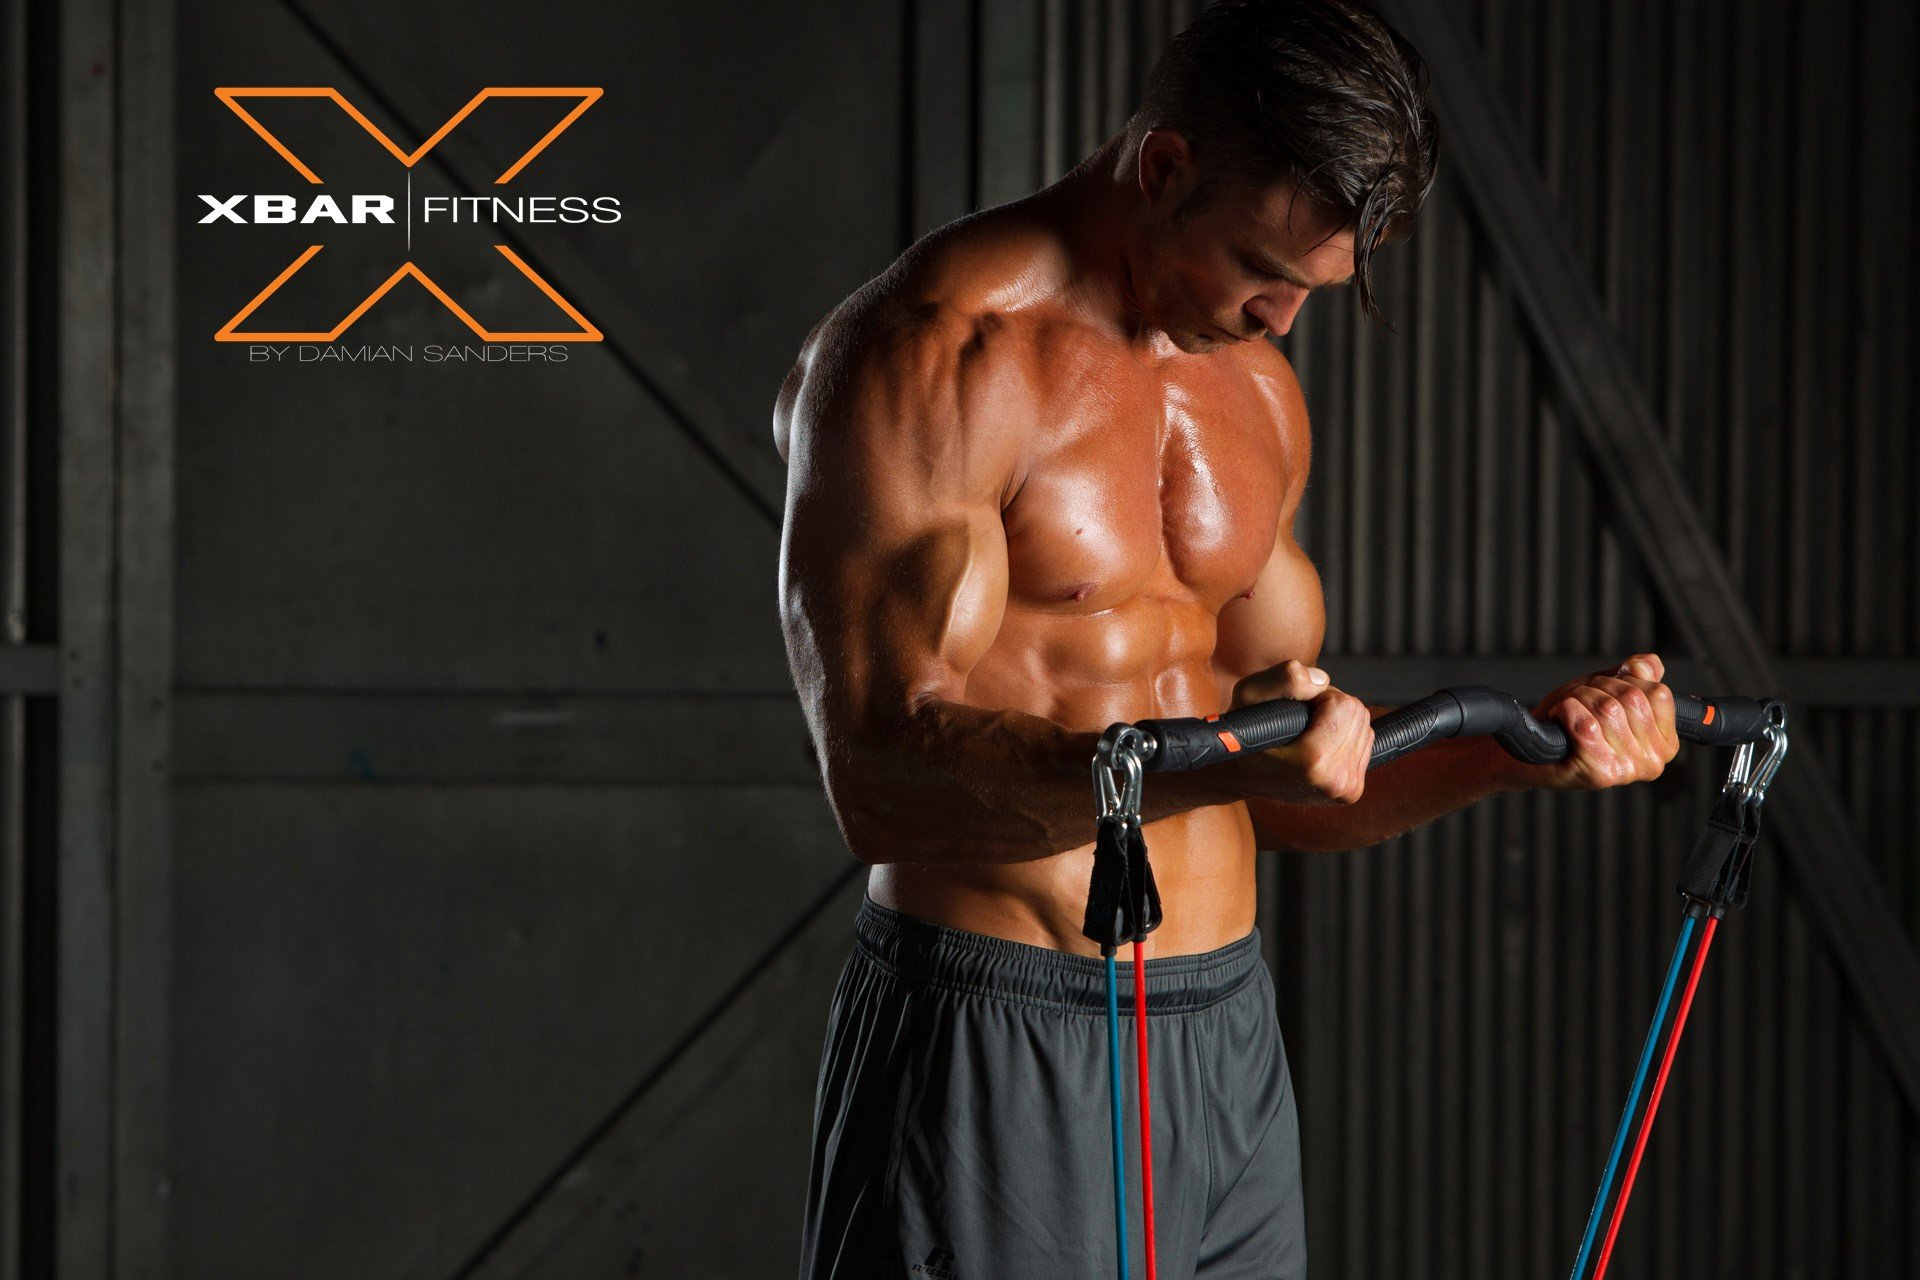 XBAR Fitness Complete 9-Piece Portable Personal Workout System with Resistance Bands by XBAR (Image #1)